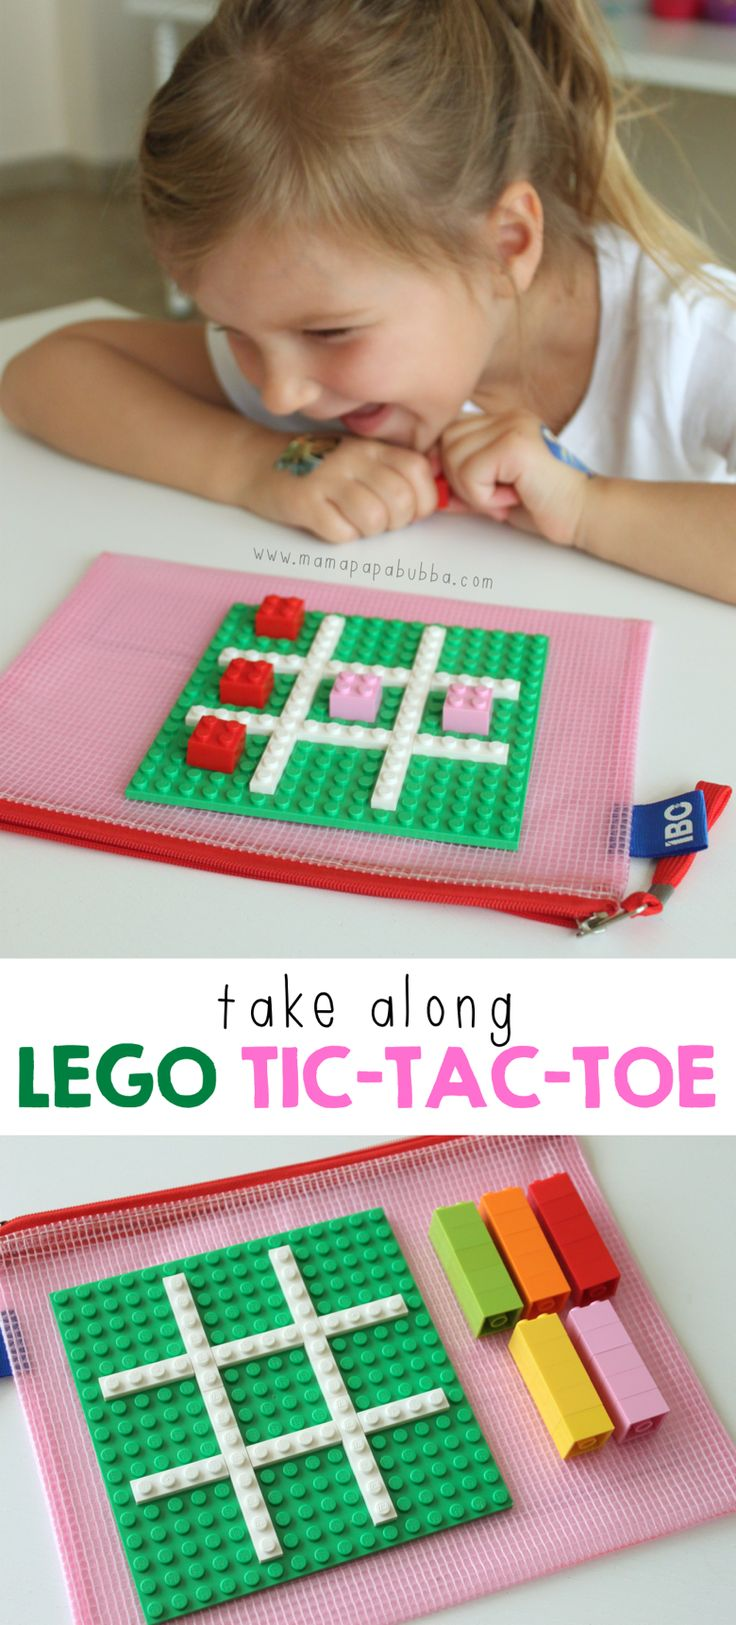 Grae and I love playing tic-tac-toe.  We play it down in the courtyard with sidewalk chalk, we play it at the beach in the sand, and we play it at restaurants with napkins and pens.  So why not play with LEGO too?! {this post contains affiliate links} Making this take along LEGO tic-tac-toe game could … … Continue reading →